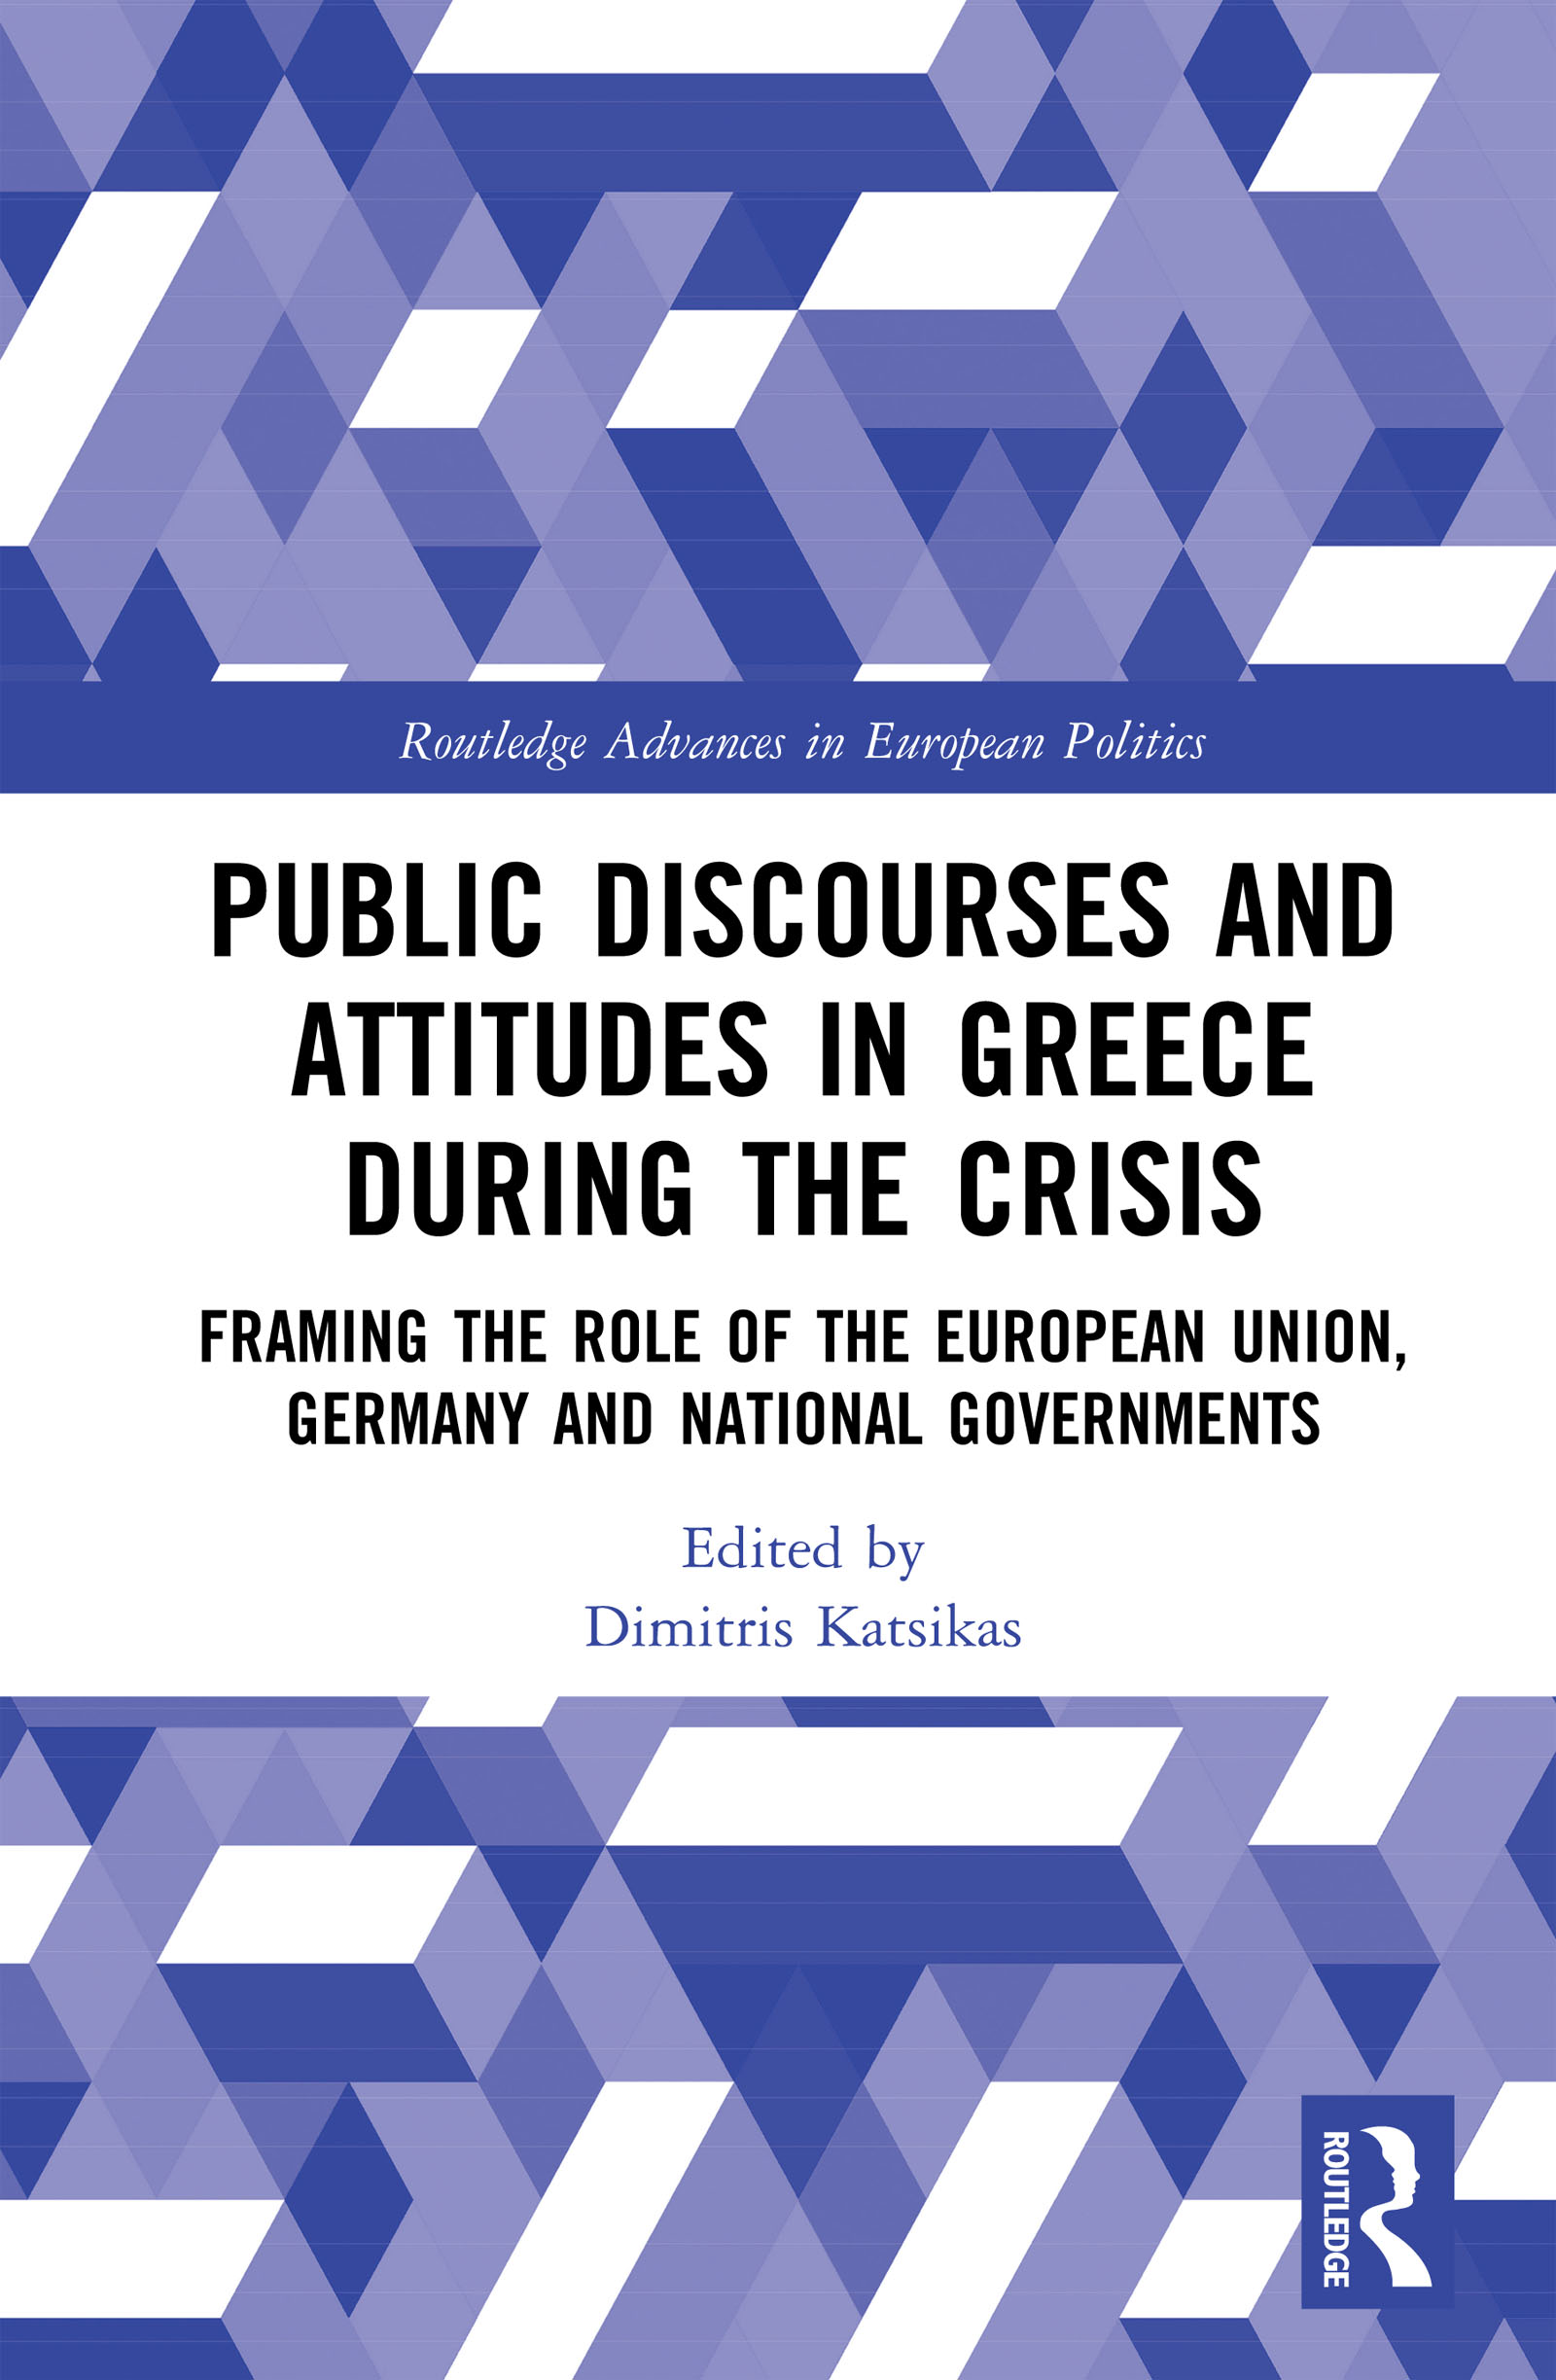 Public Discourses and Attitudes in Greece during the Crisis: Framing the Role of the European Union, Germany and National Governments book cover